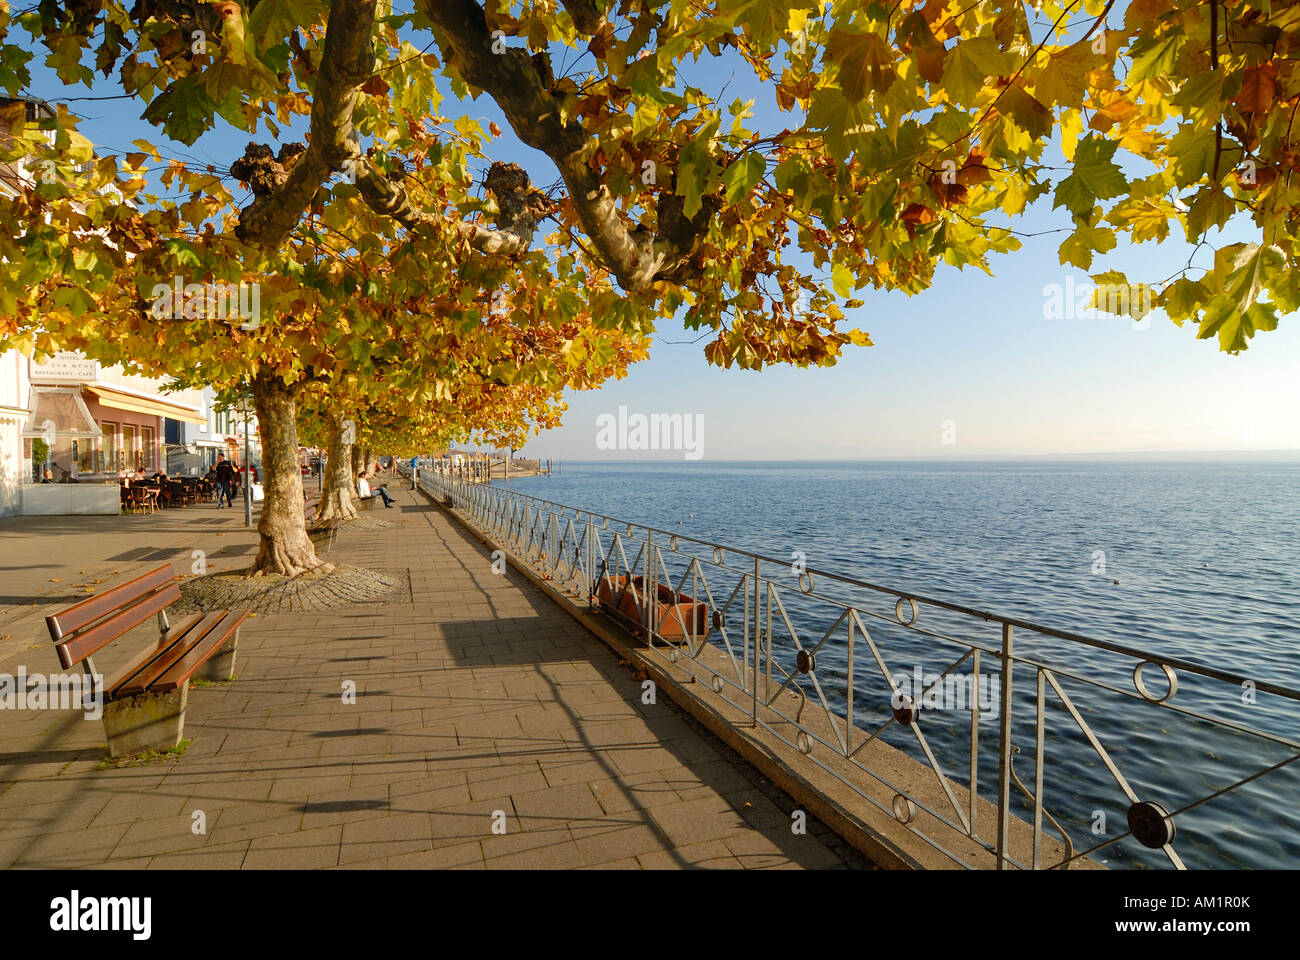 Meersburg - the waterfront - Baden Wuerttemberg, Germany Europe. Stock Photo